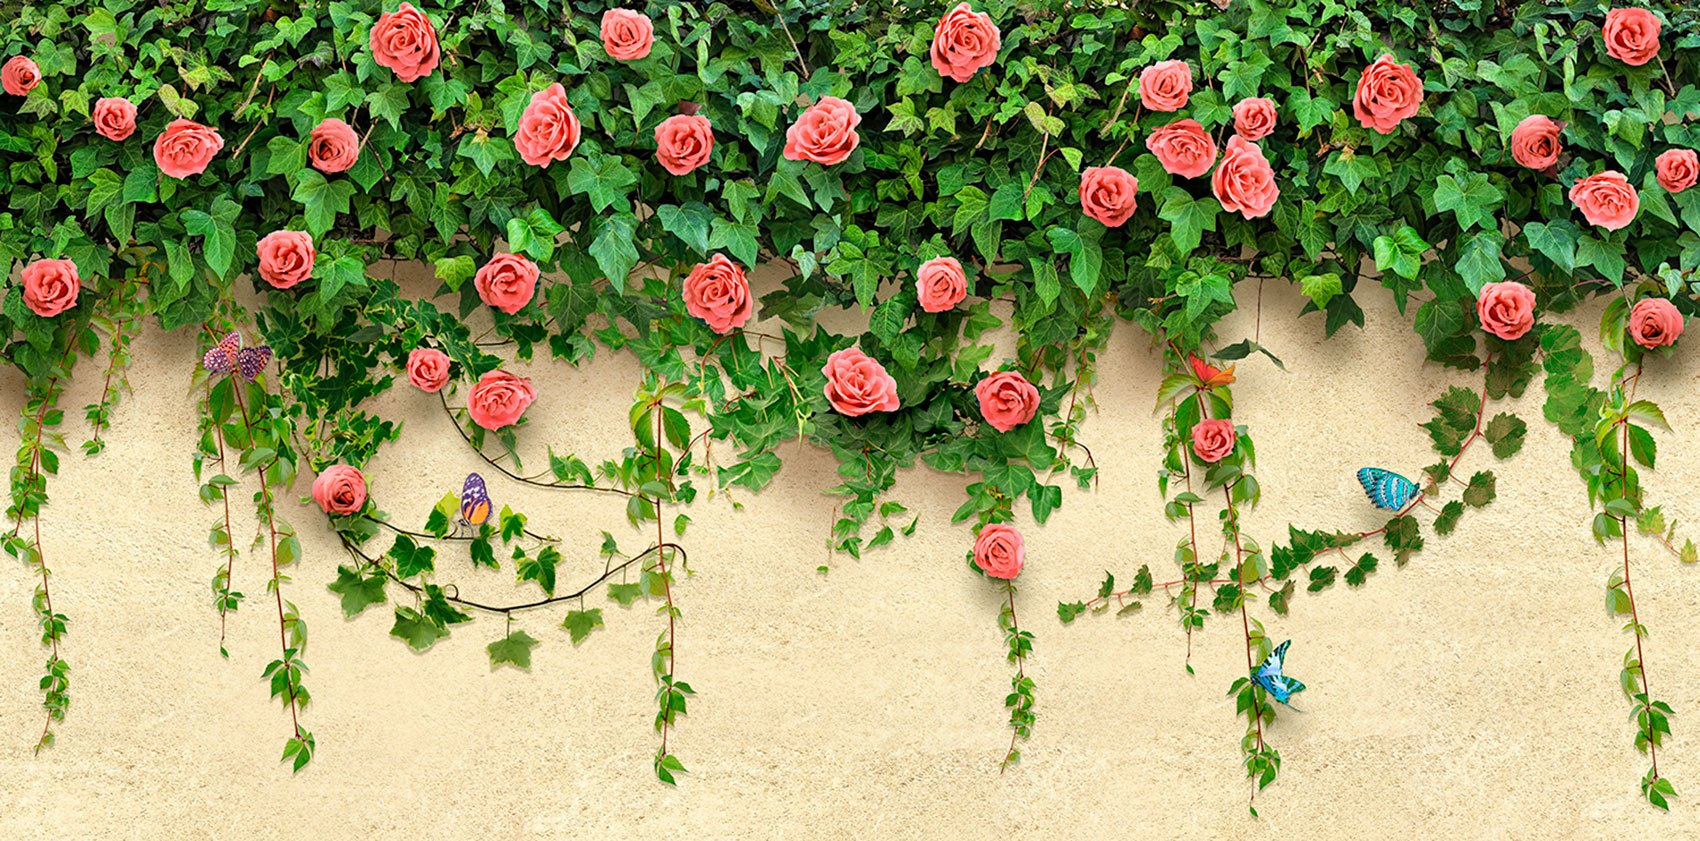 Wall Murals: Ivy and roses